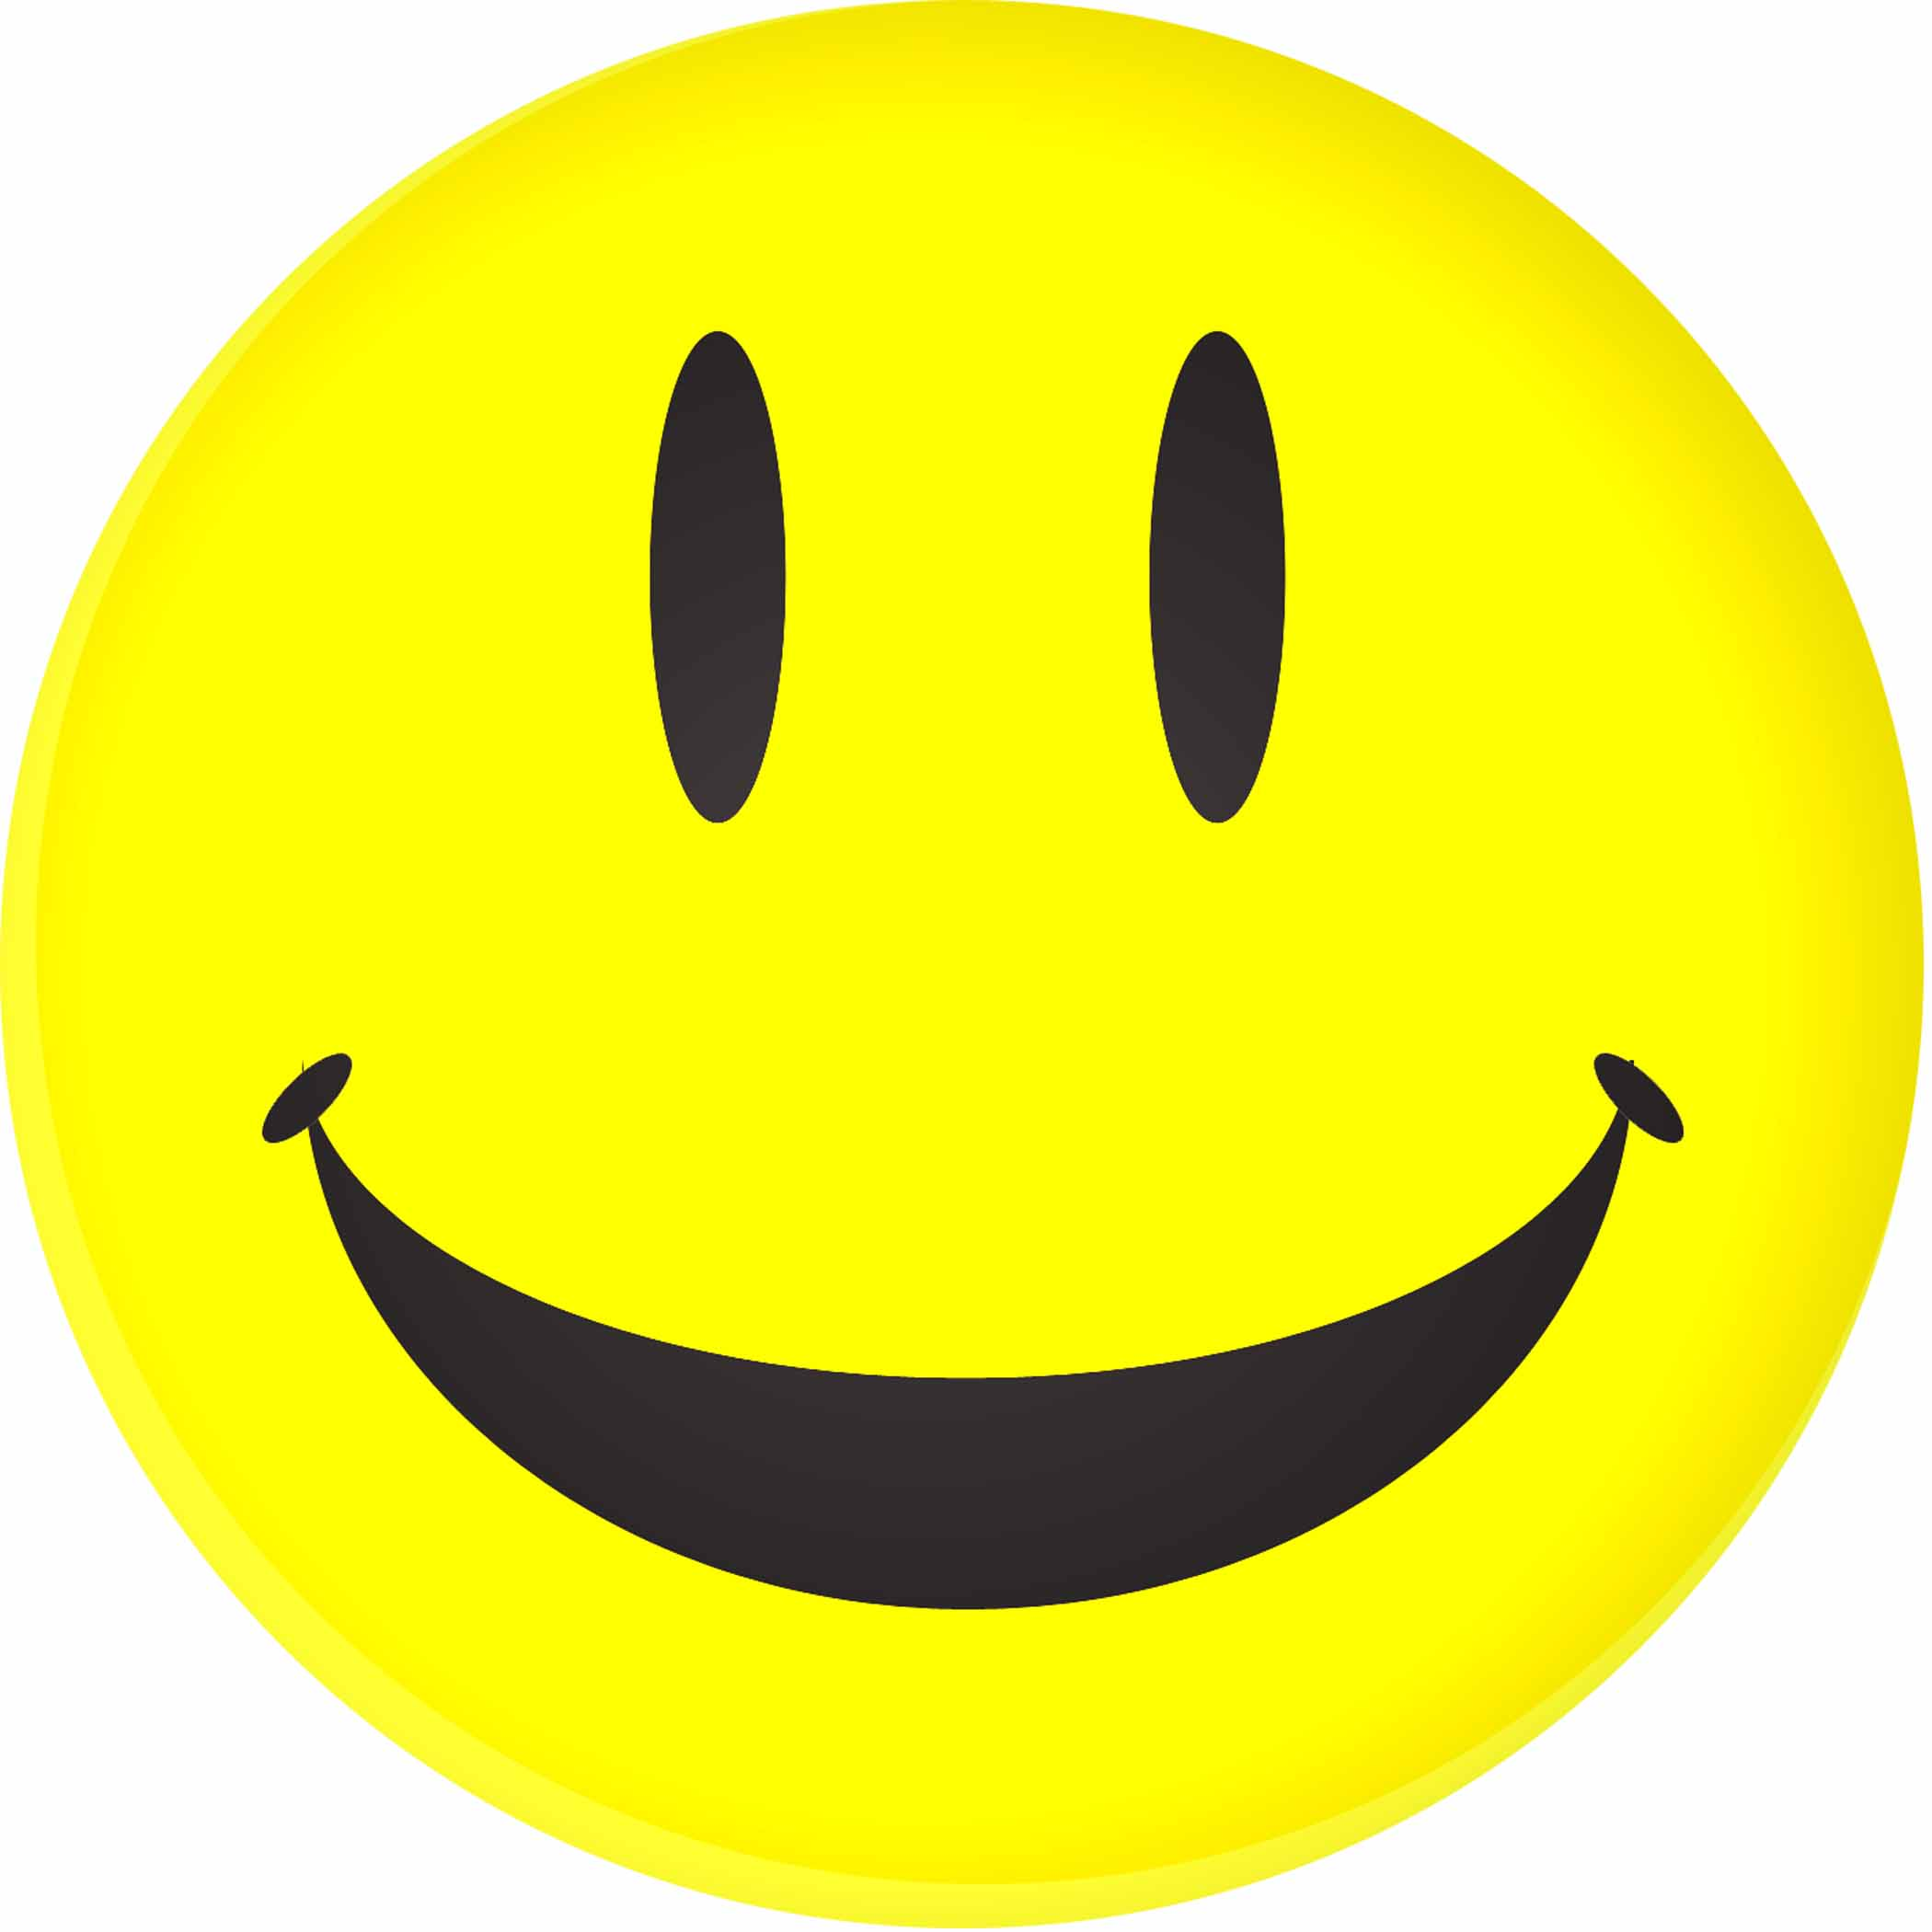 Smiling Faces Clipart - Clipart Kid